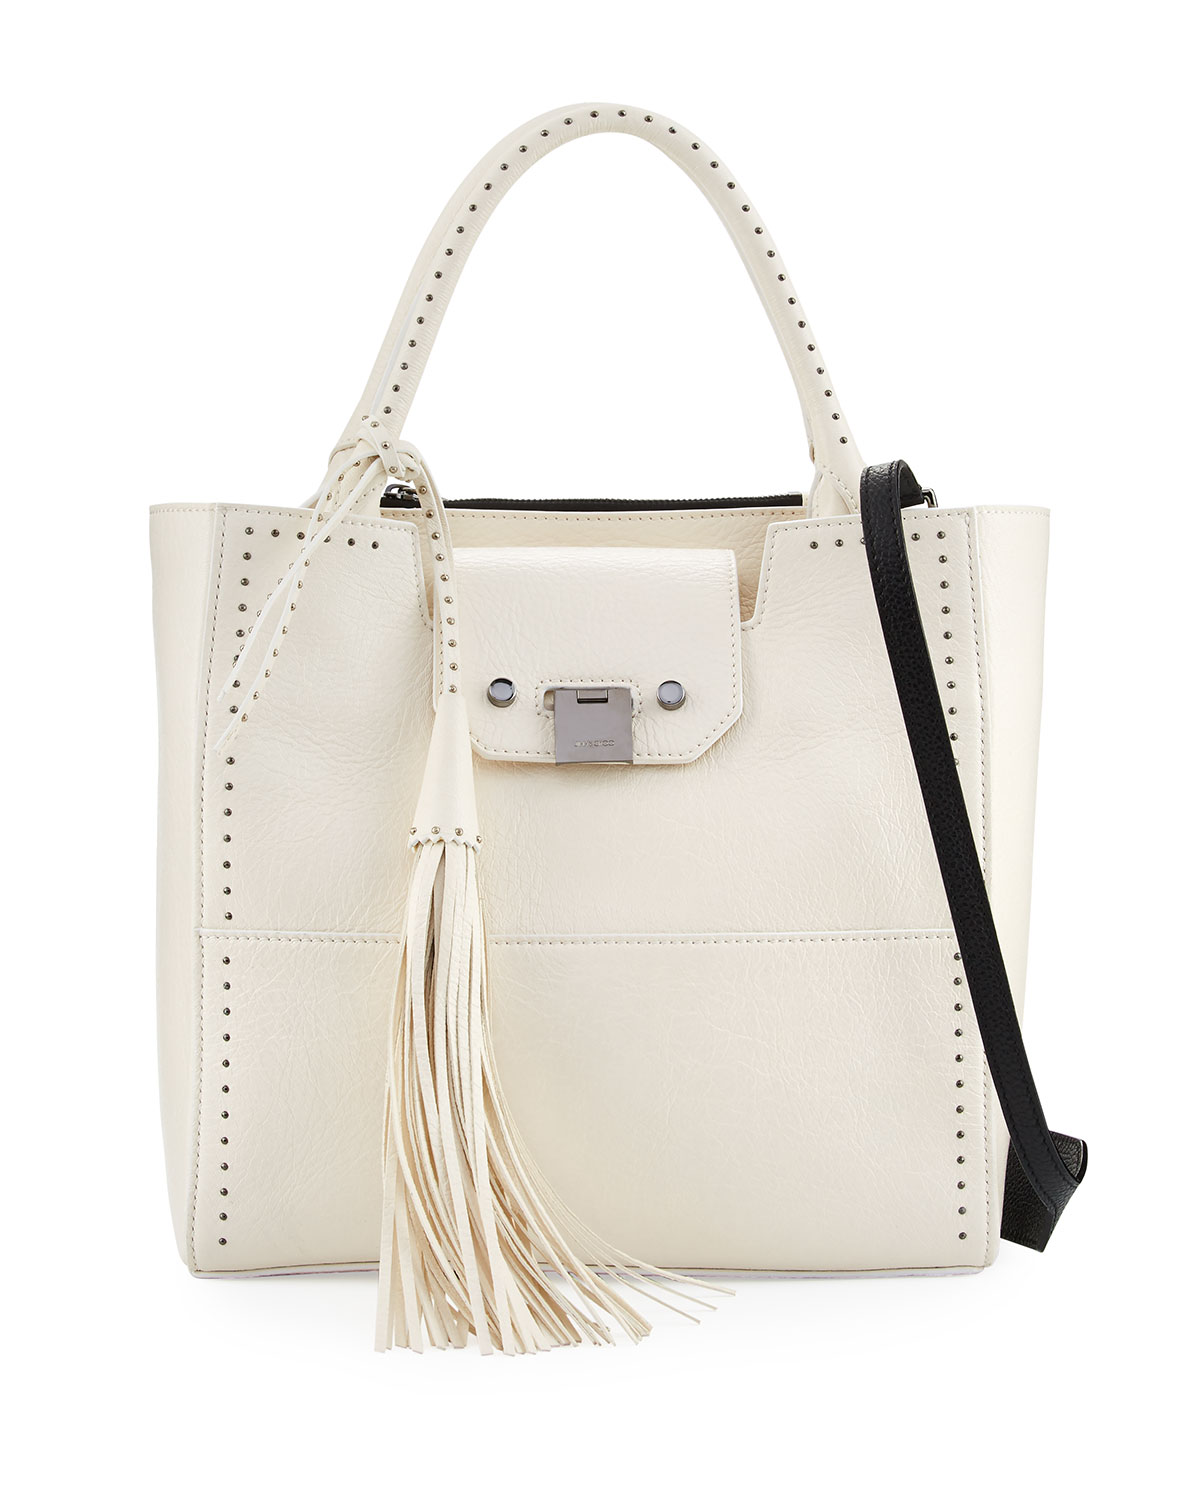 Robin Studded Leather Tote Bag, White